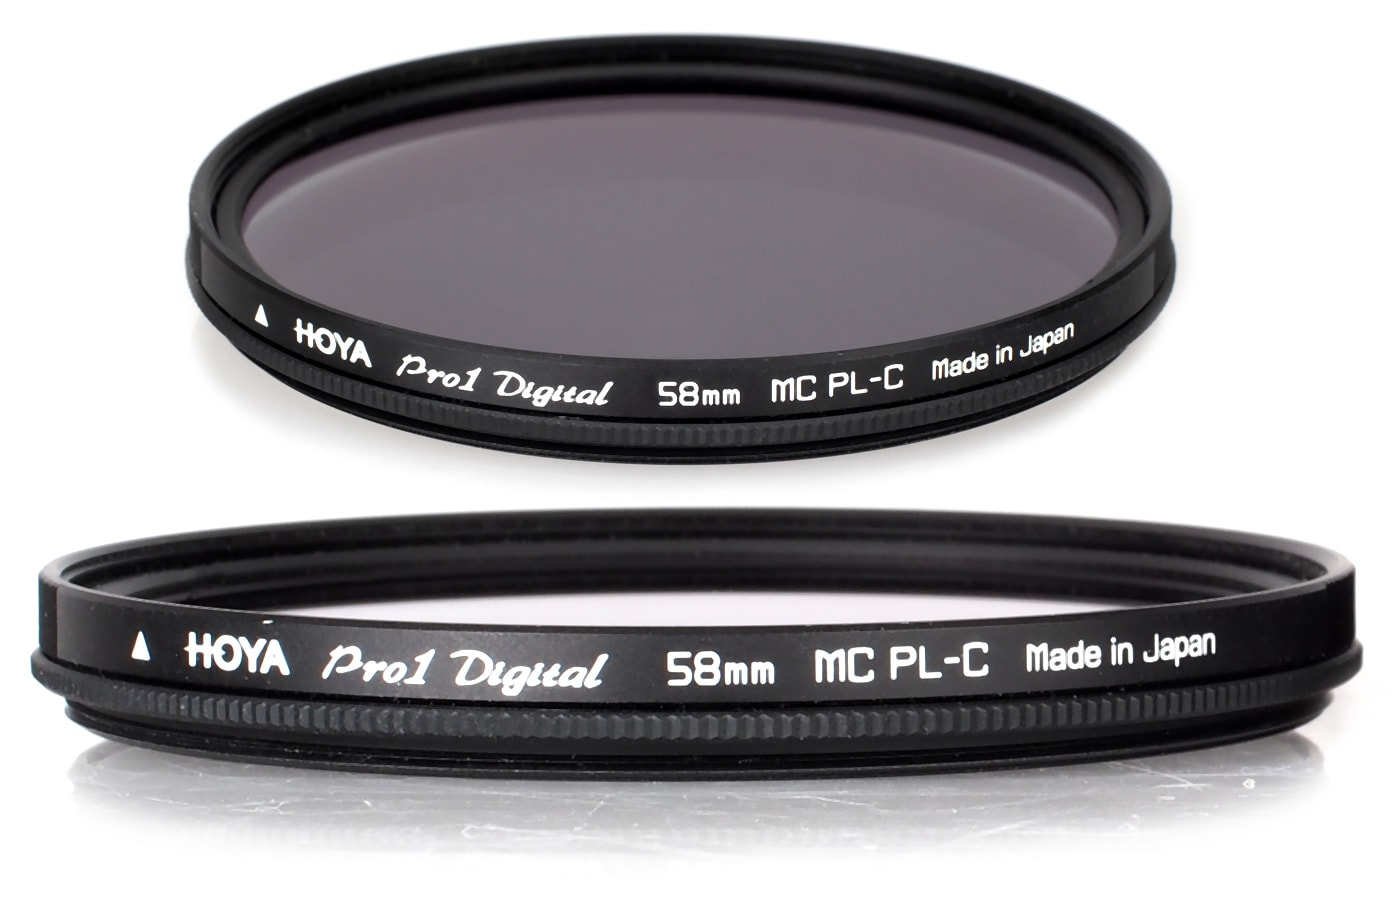 Polarizer Dslr Filter Hoya Pro1 Cpl For Enhanced Saturation Uv 58mm Pro 1 Contrast And Image Quality